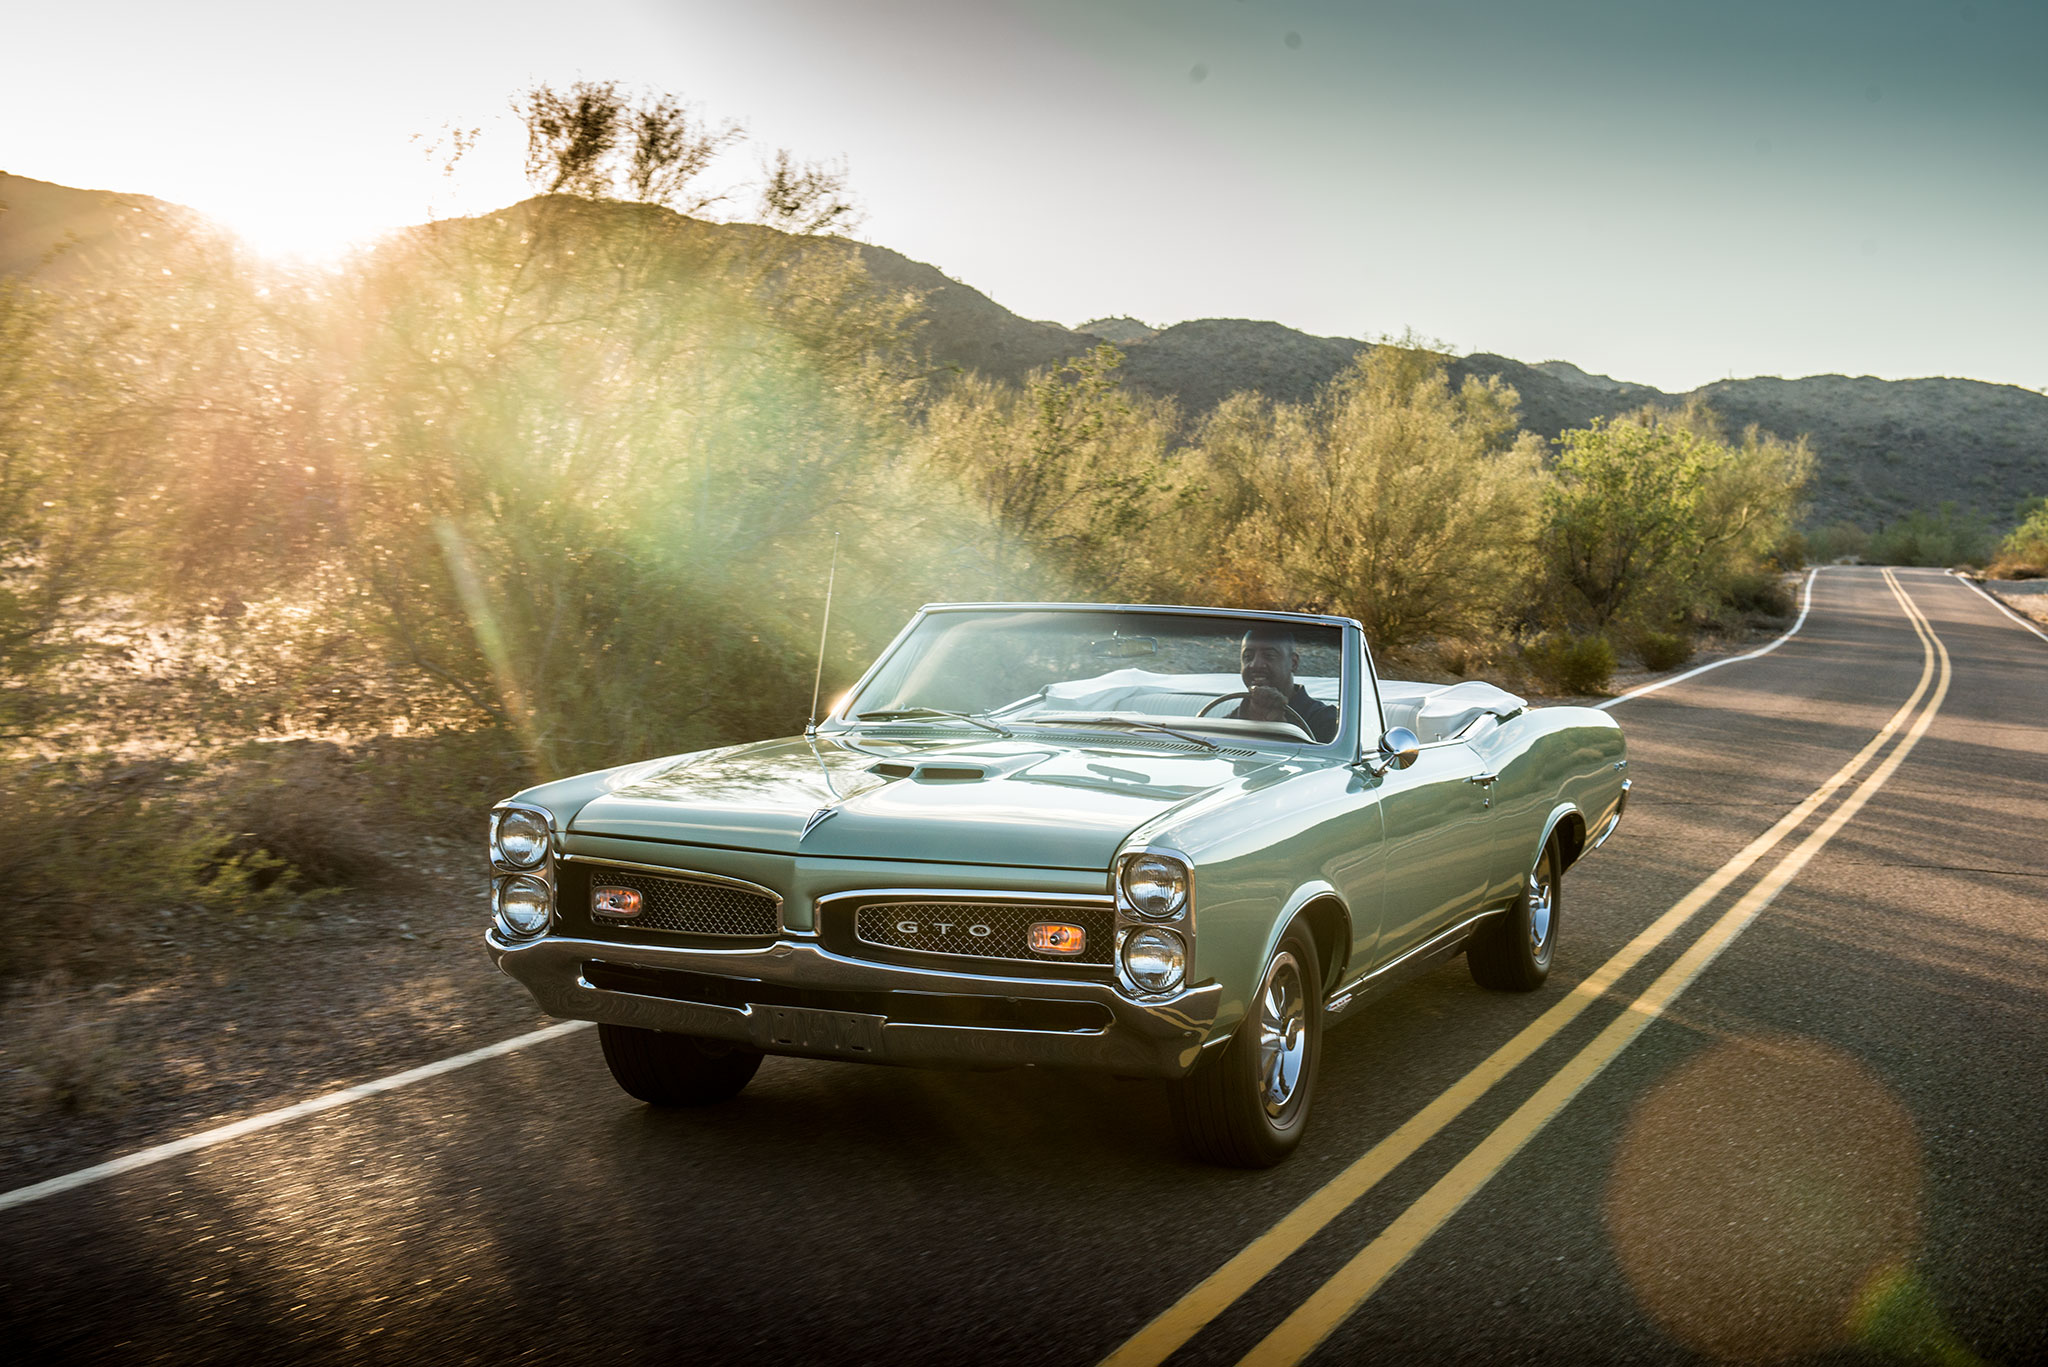 1967 Pontiac GTO convertible desert highway